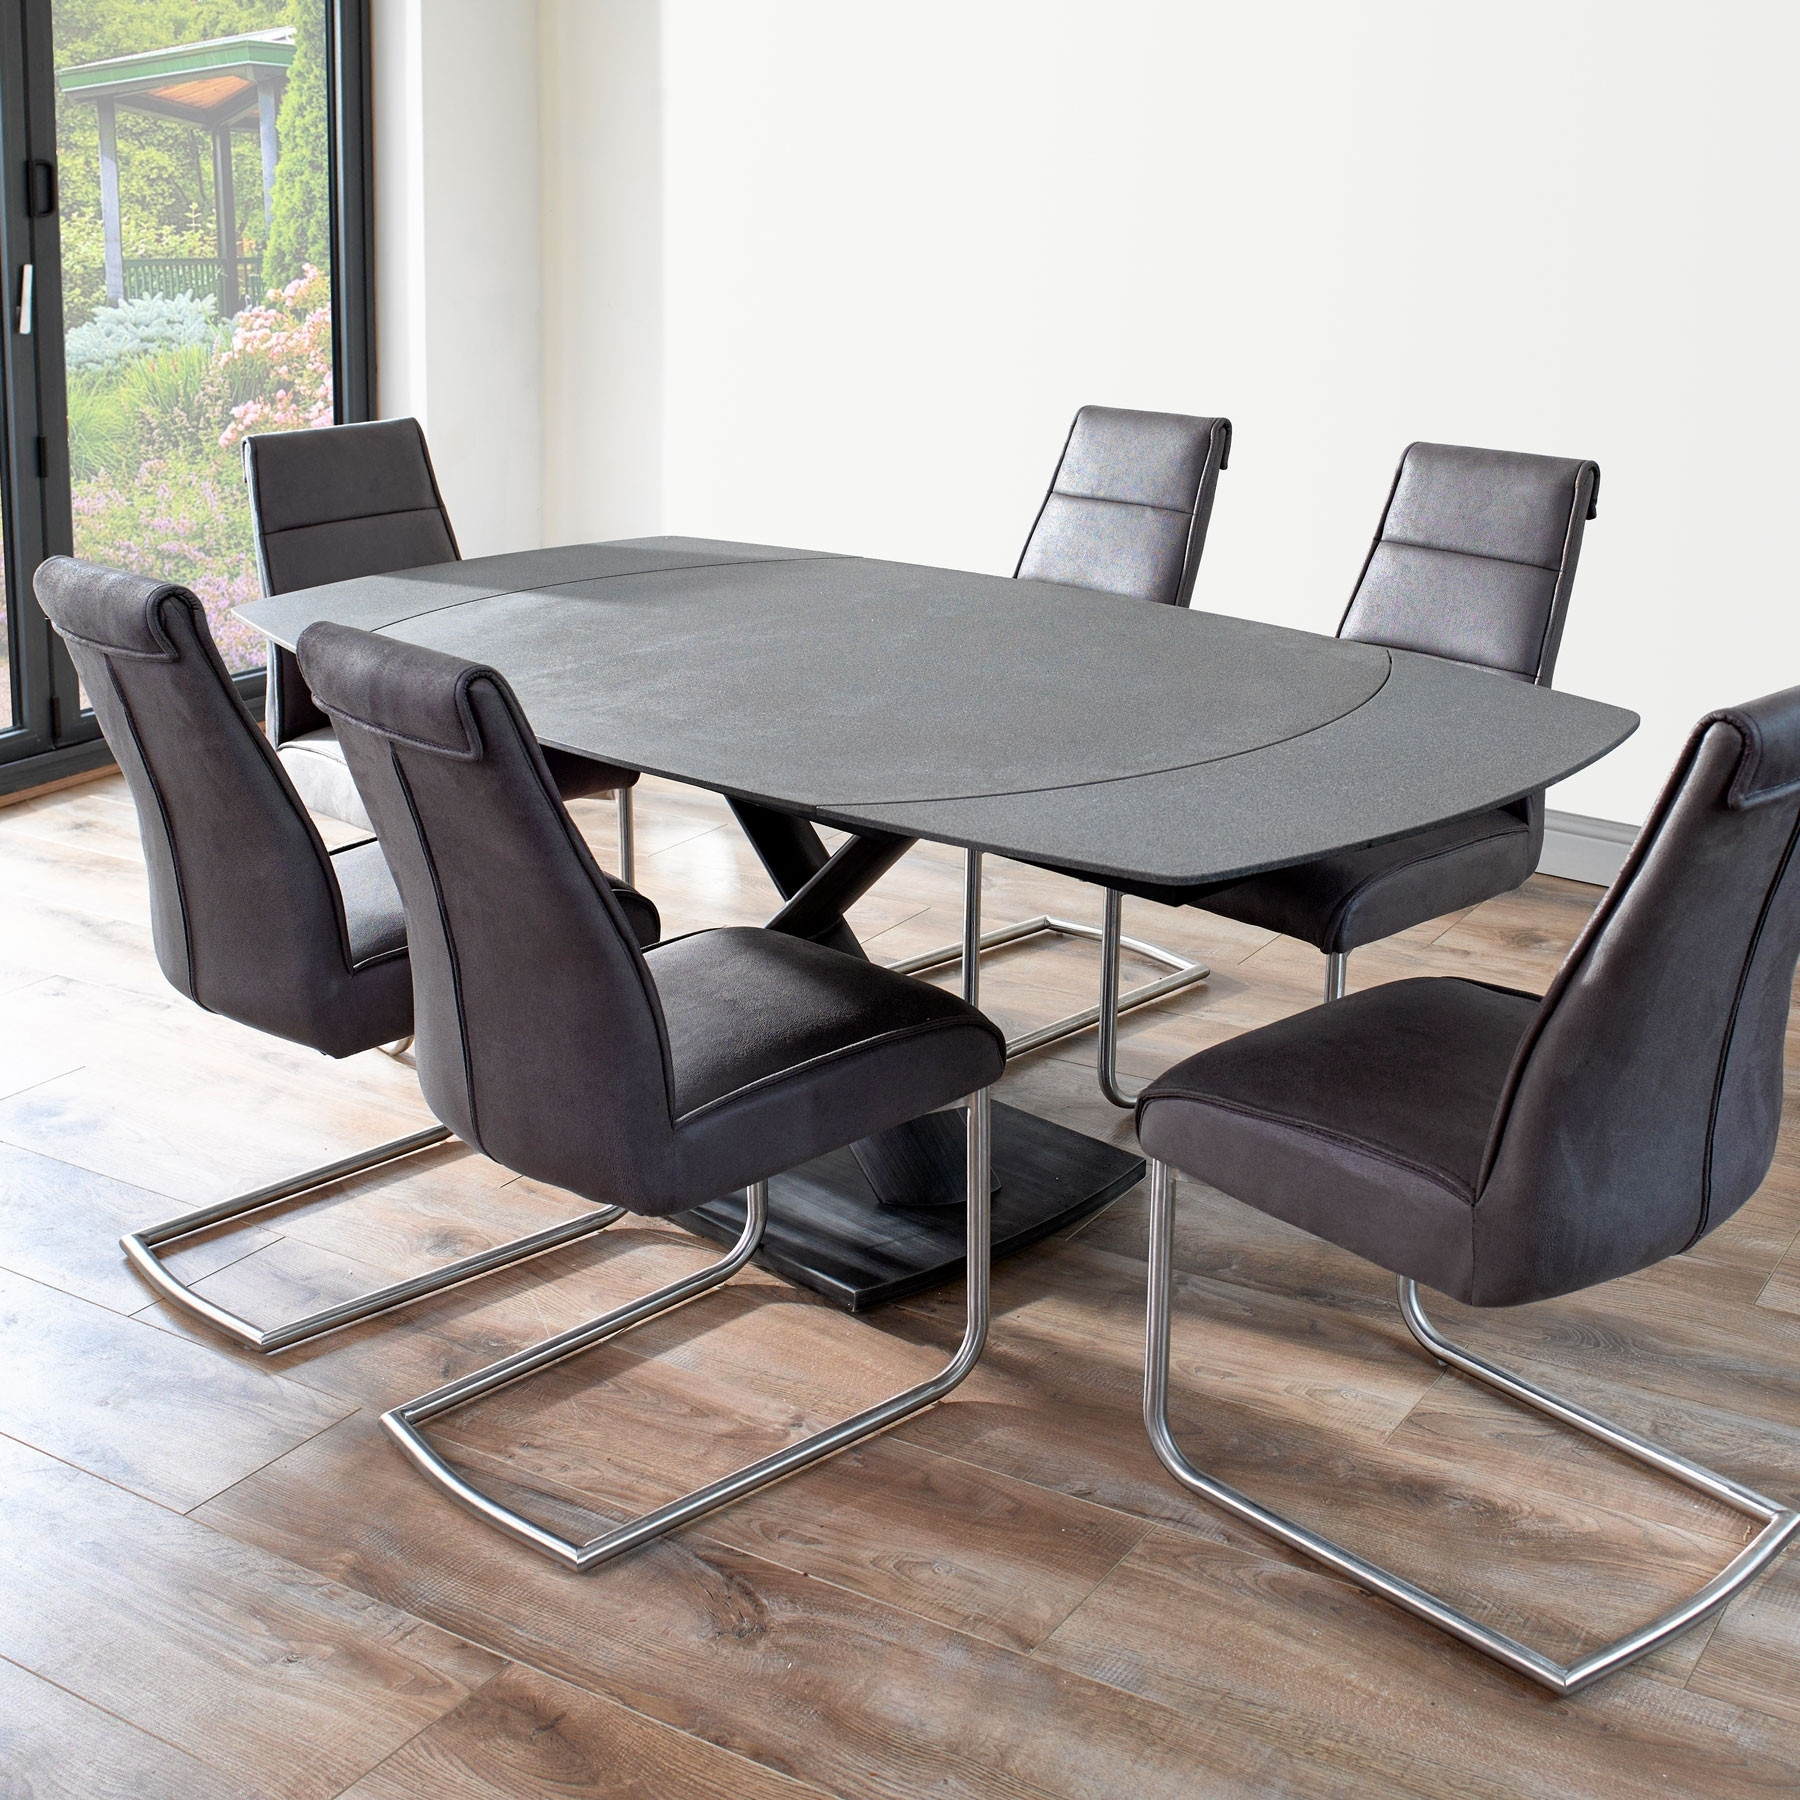 Domasco Revolving Extending Dining Table & 6 Chairs Regarding Most Up To Date Extendable Dining Table And 6 Chairs (Gallery 1 of 25)